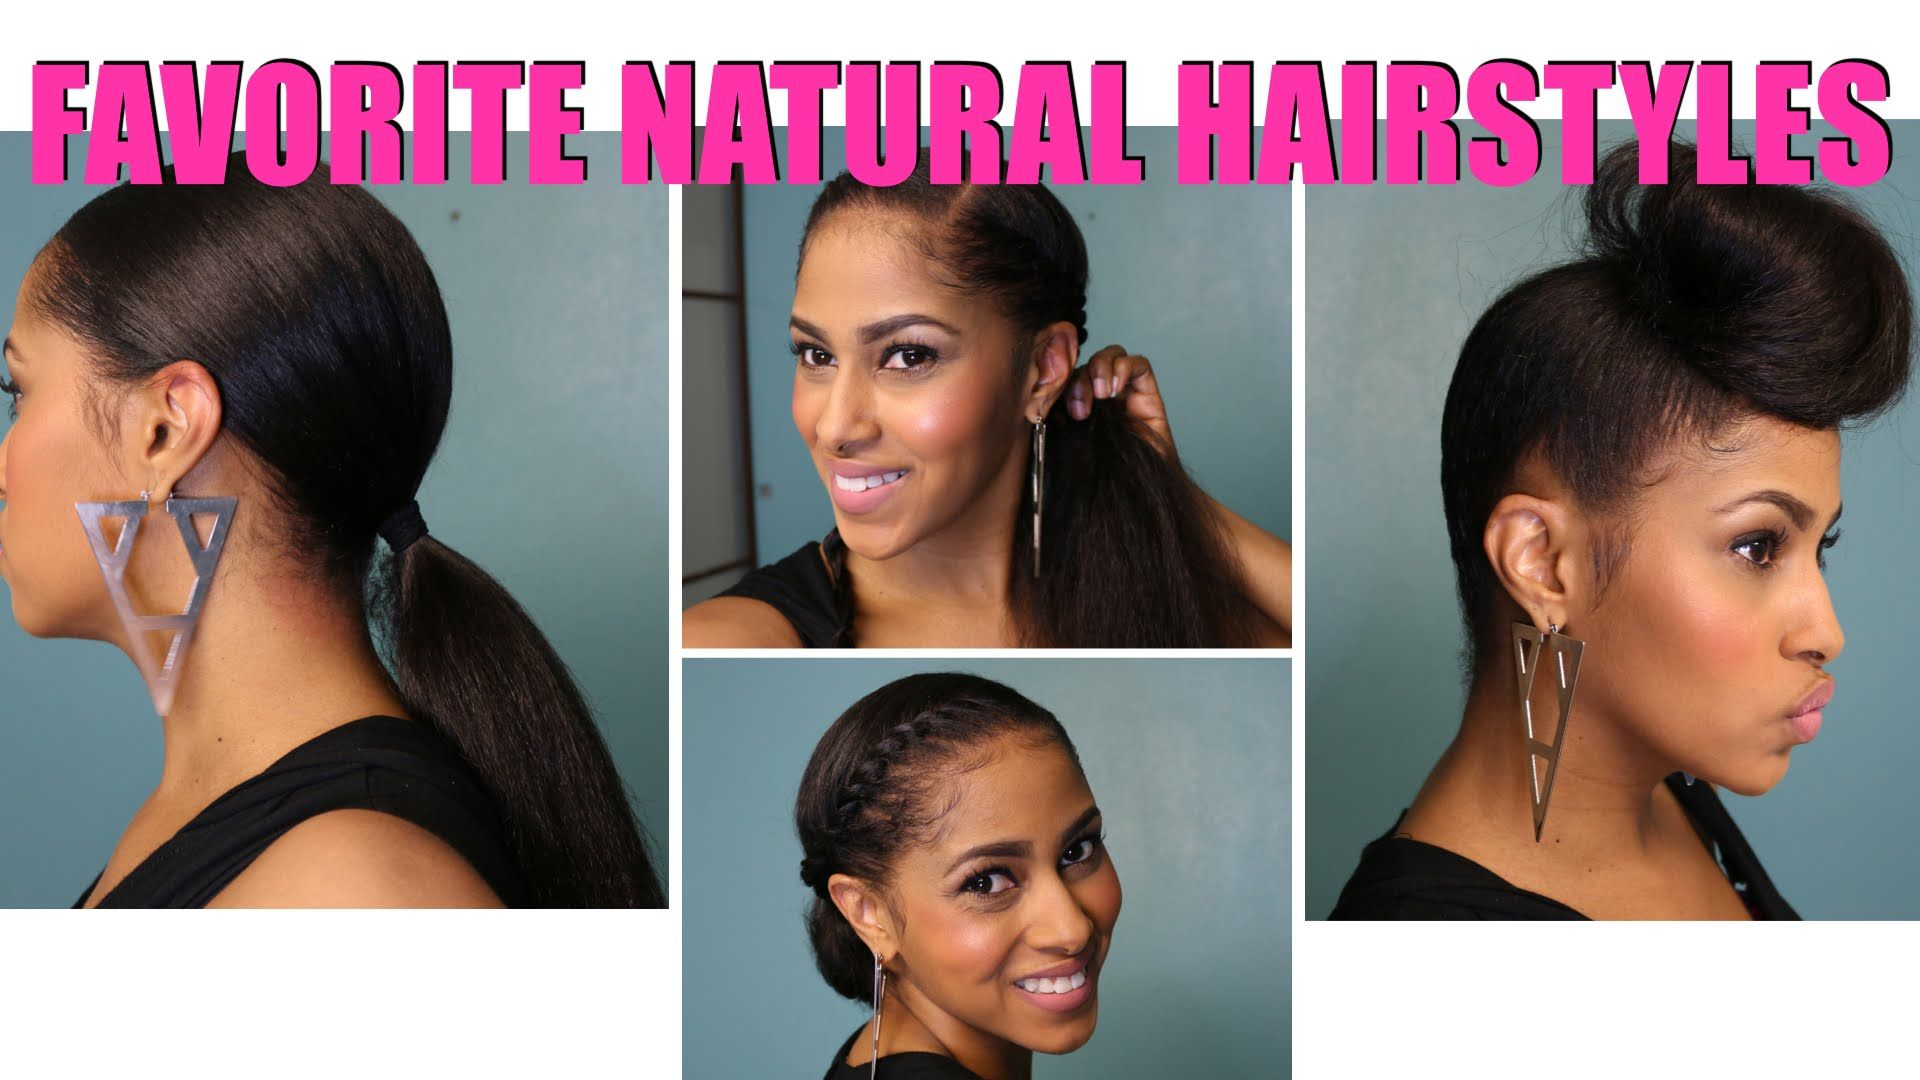 Natural hairstyles tutorial on my favorite natural hairstyles the most awesome how to do natural hairstyles for hair solutioingenieria Choice Image